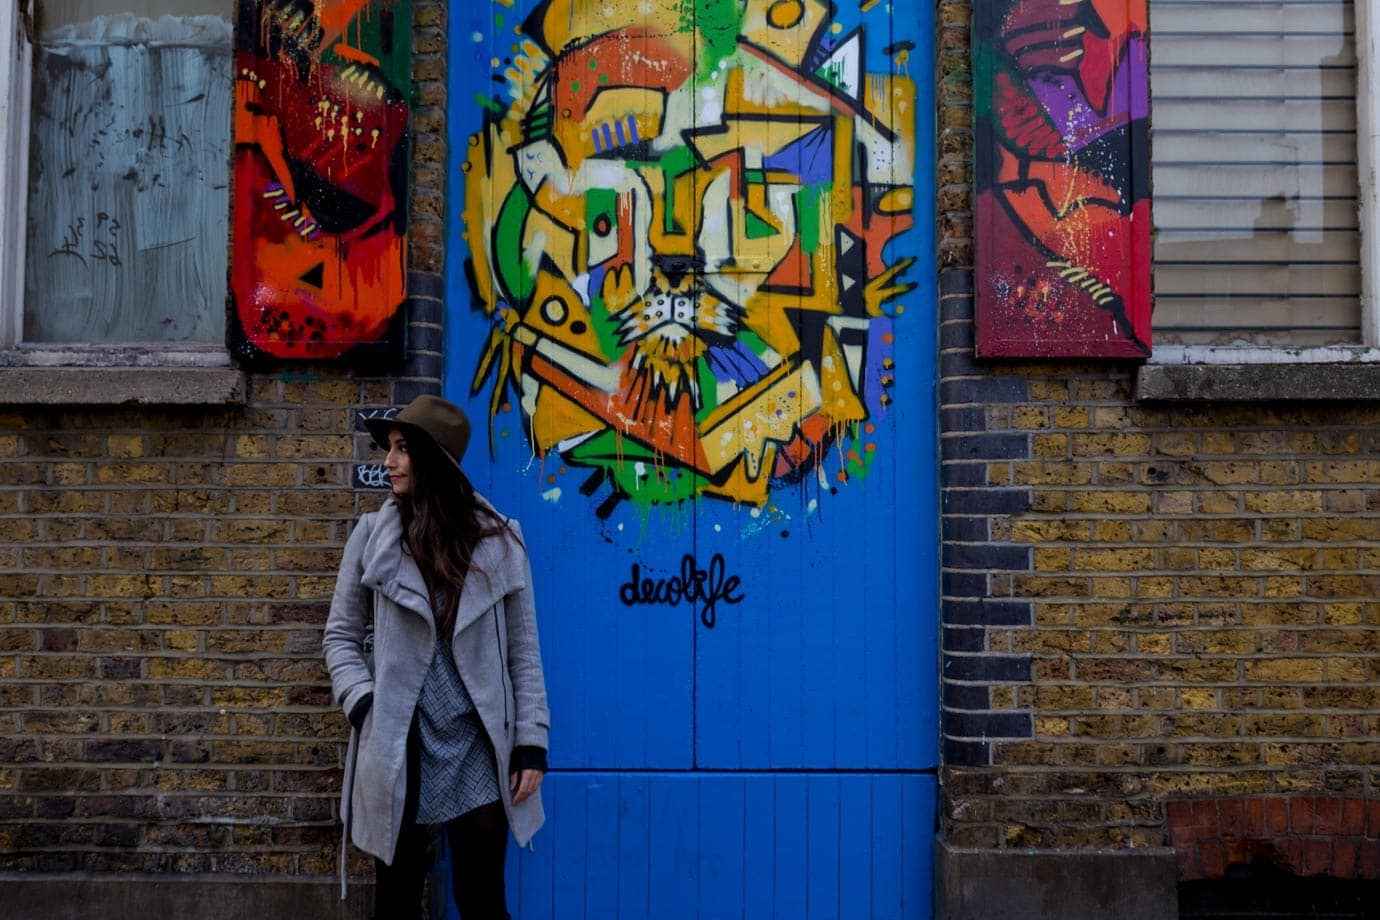 street art camden london brianna wiens